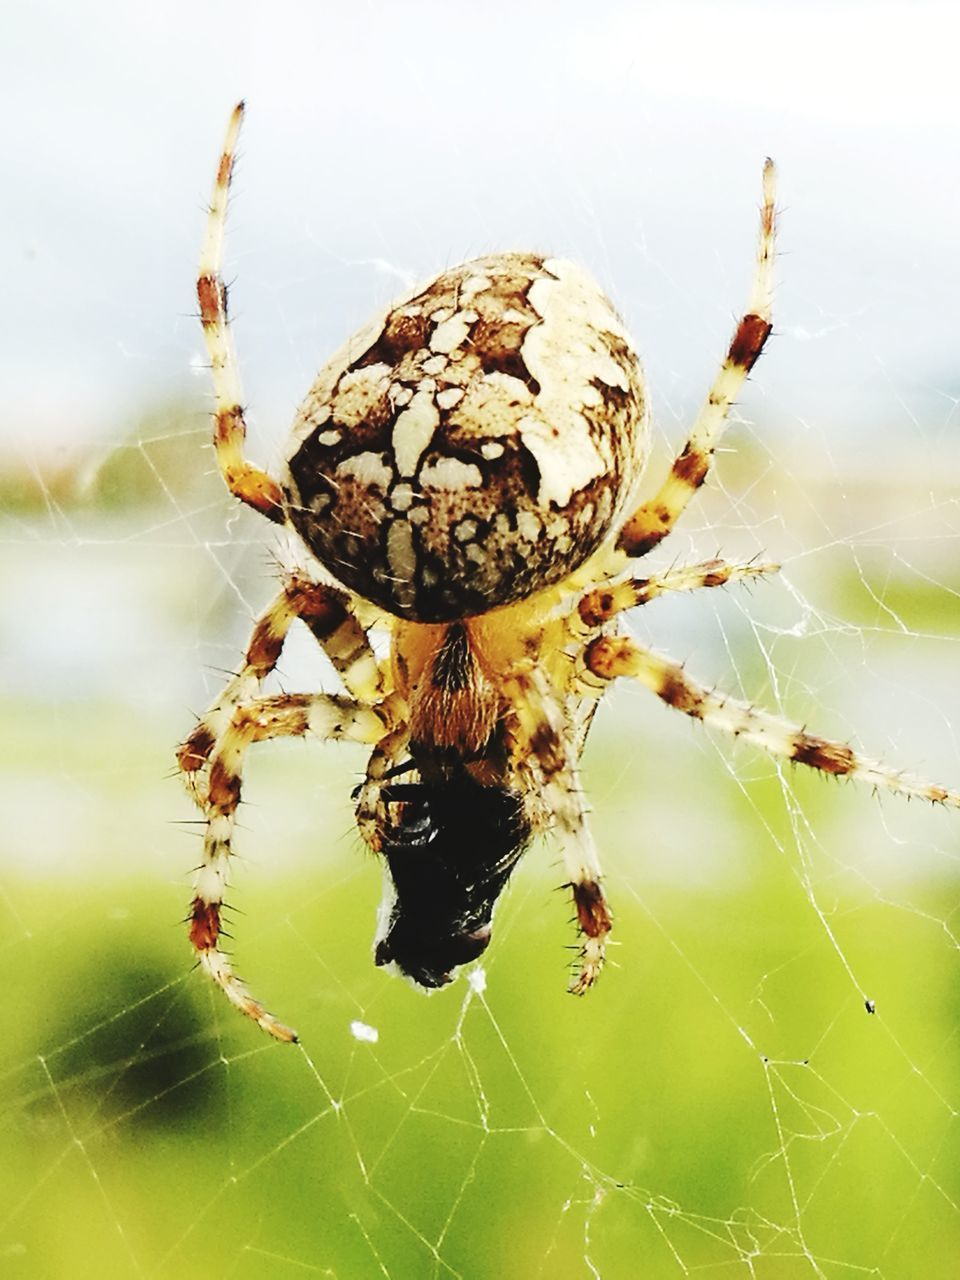 spider, spider web, animal themes, one animal, animals in the wild, focus on foreground, web, close-up, nature, survival, day, insect, outdoors, animal leg, no people, animal wildlife